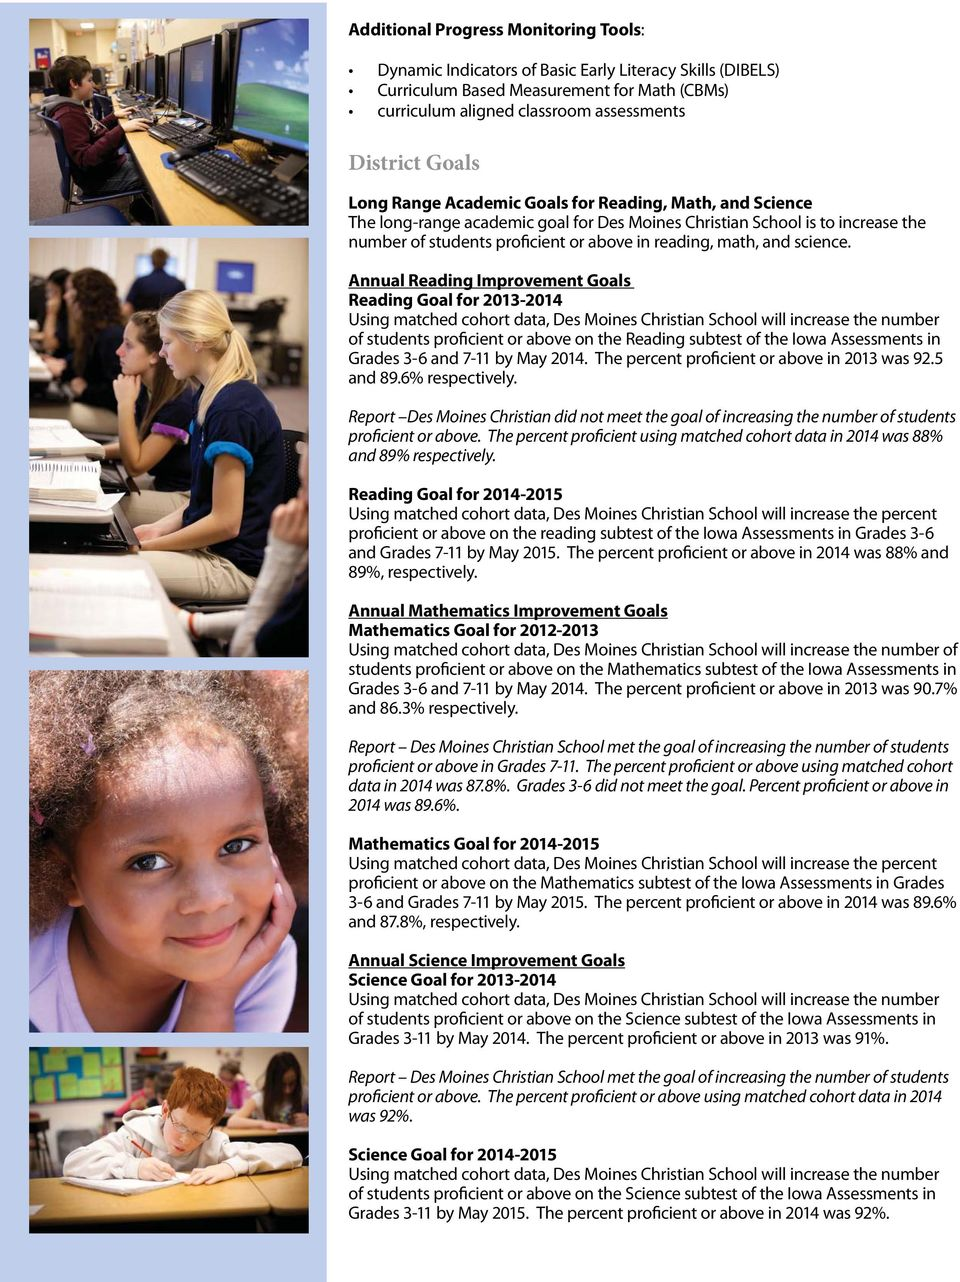 science. Annual Reading Improvement Goals Reading Goal for 2013-2014 of students proficient or above on the Reading subtest of the Iowa Assessments in Grades 3-6 and 7-11 by May 2014.